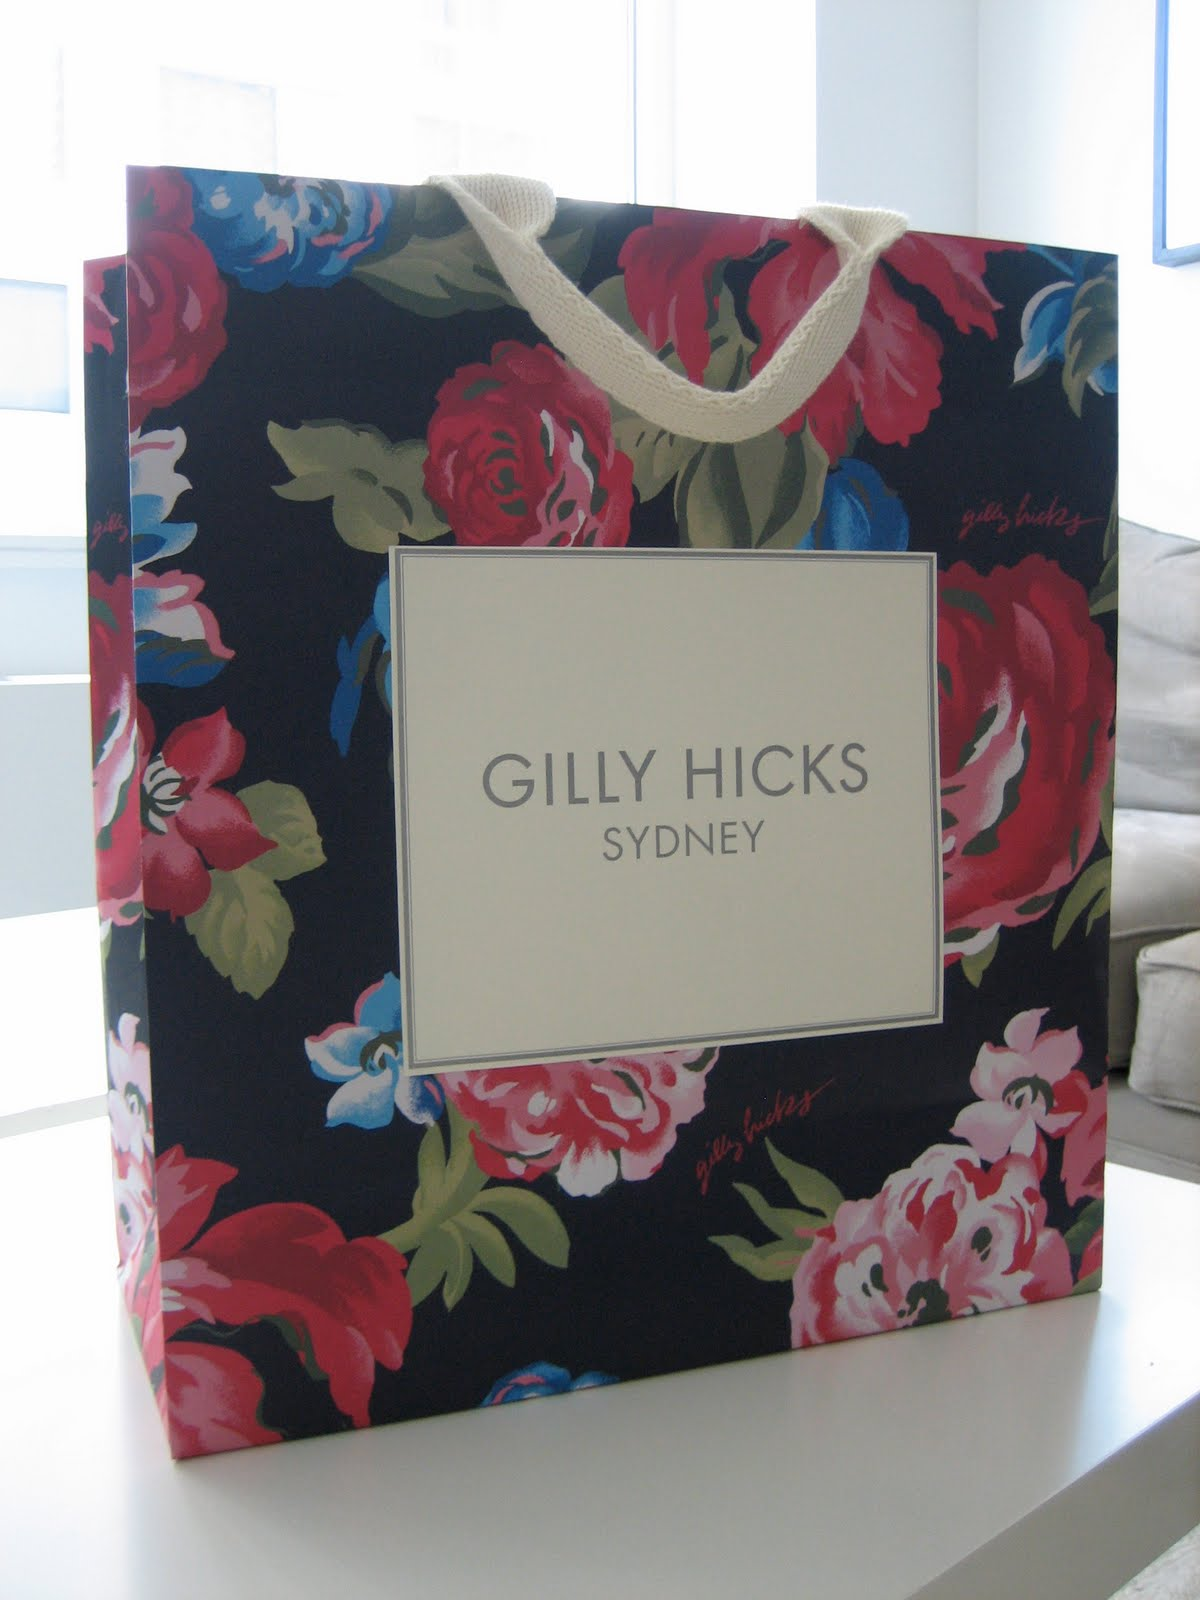 Gilly hicks online shopping